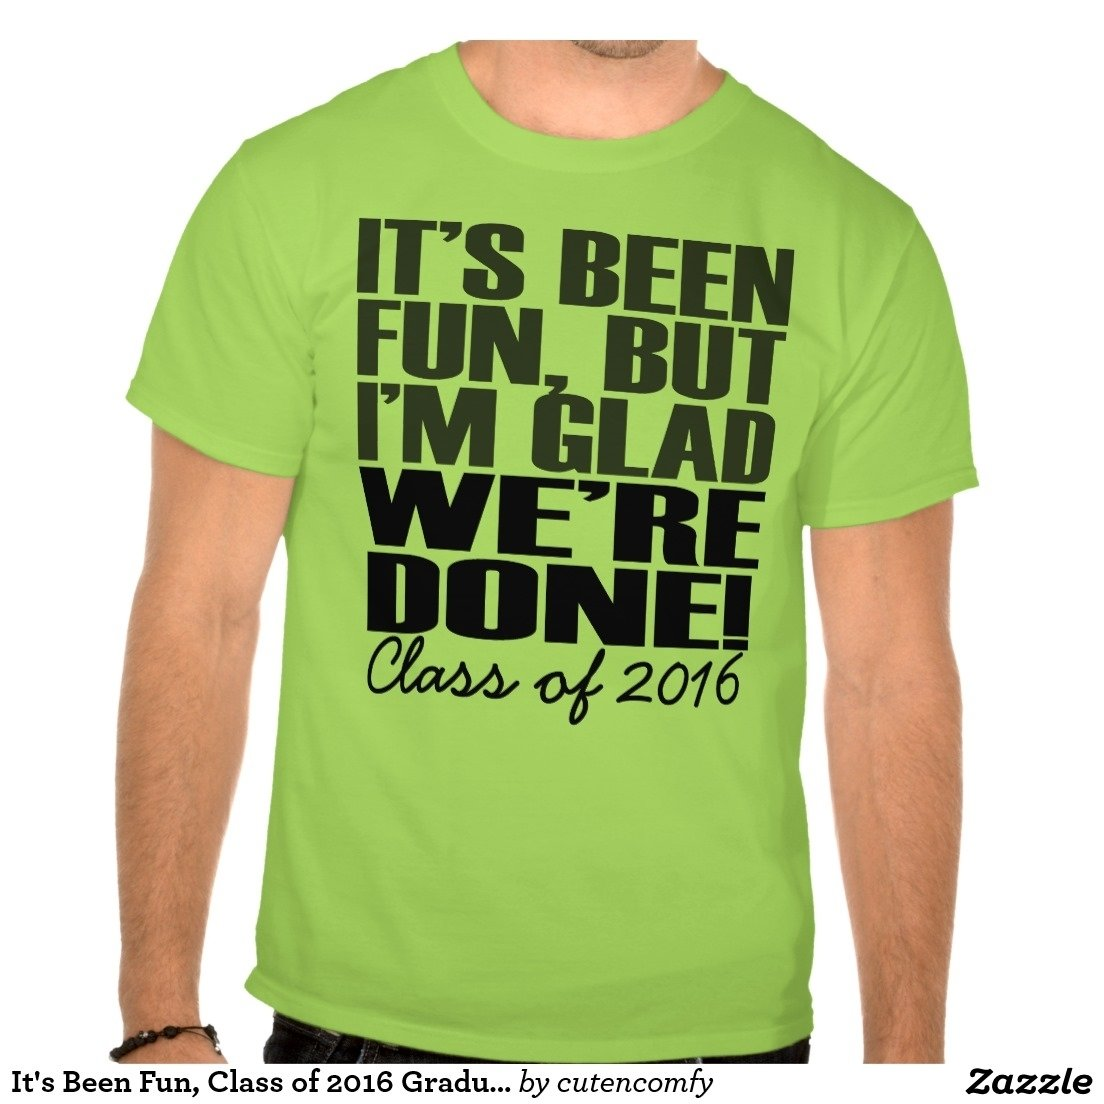 it's been fun, class of 2016 graduation seniors t-shirt | graduation